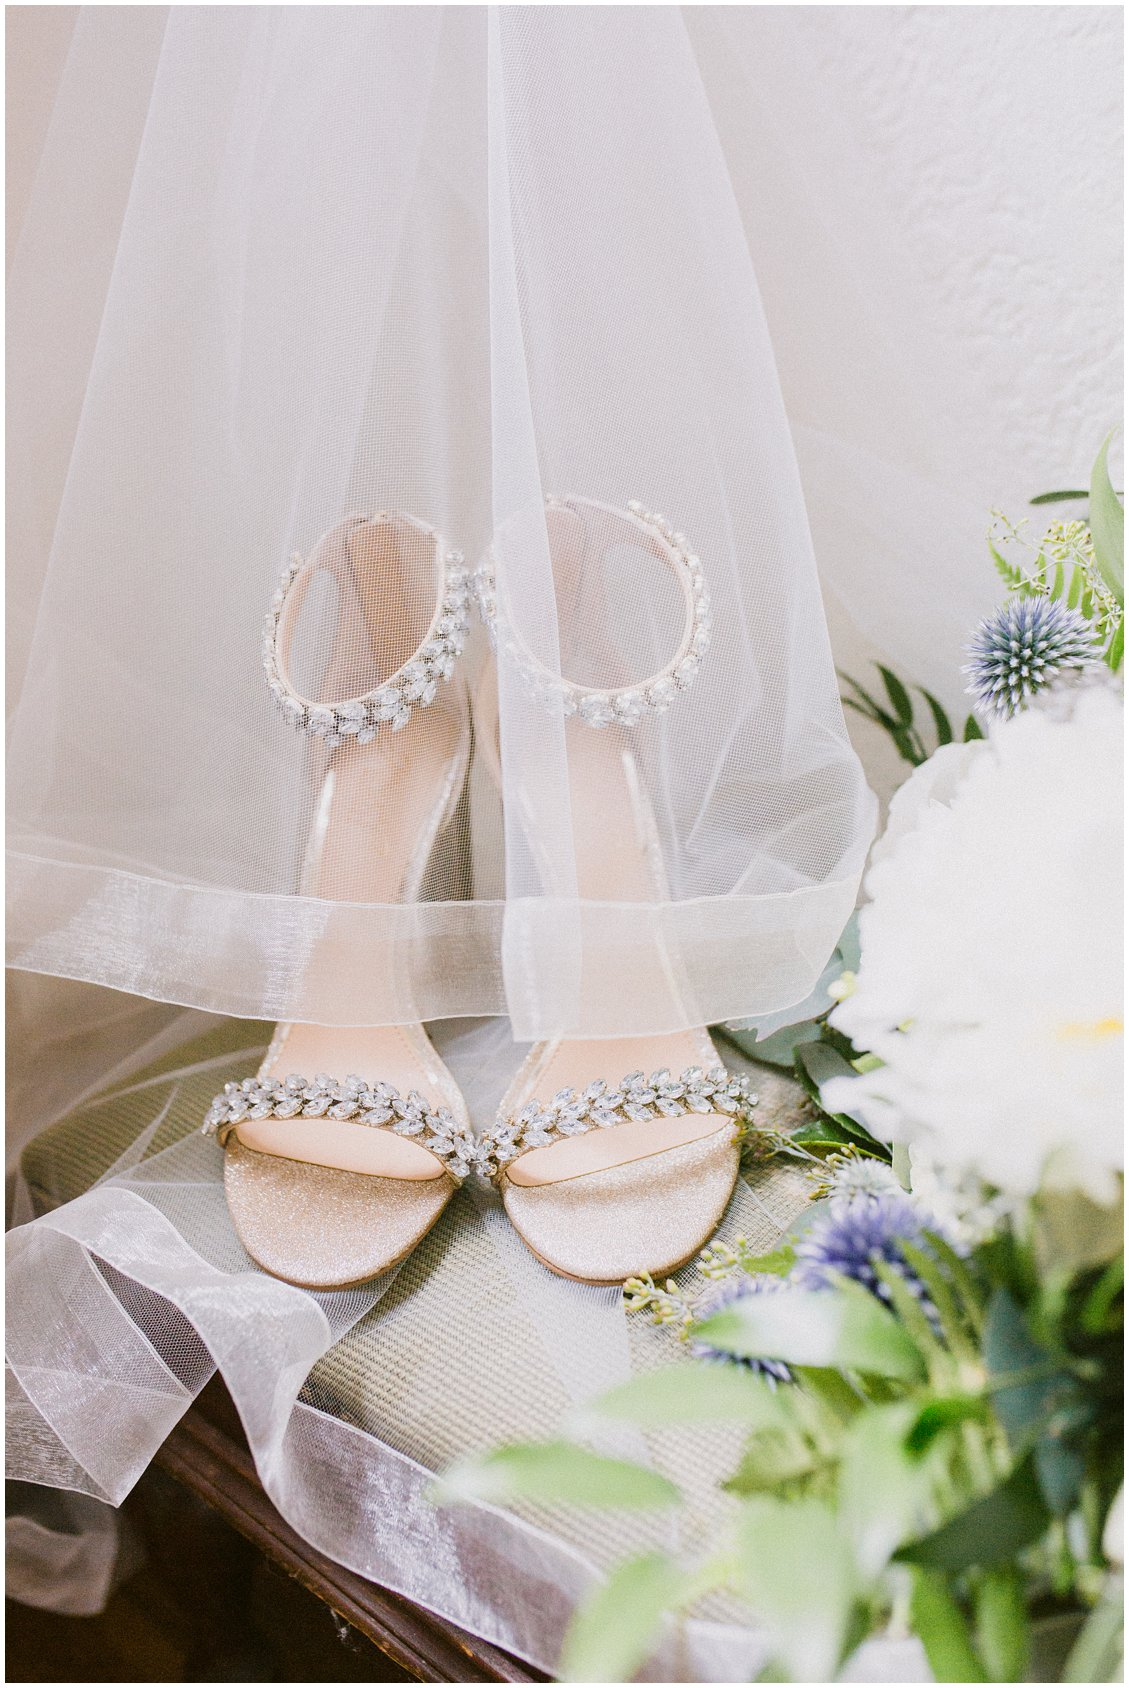 Bridal shoes at an elegant summertime wedding at The Boocat Club and Graham Chapel on WashU Campus in St Louis Missouri by Pattengale Photography